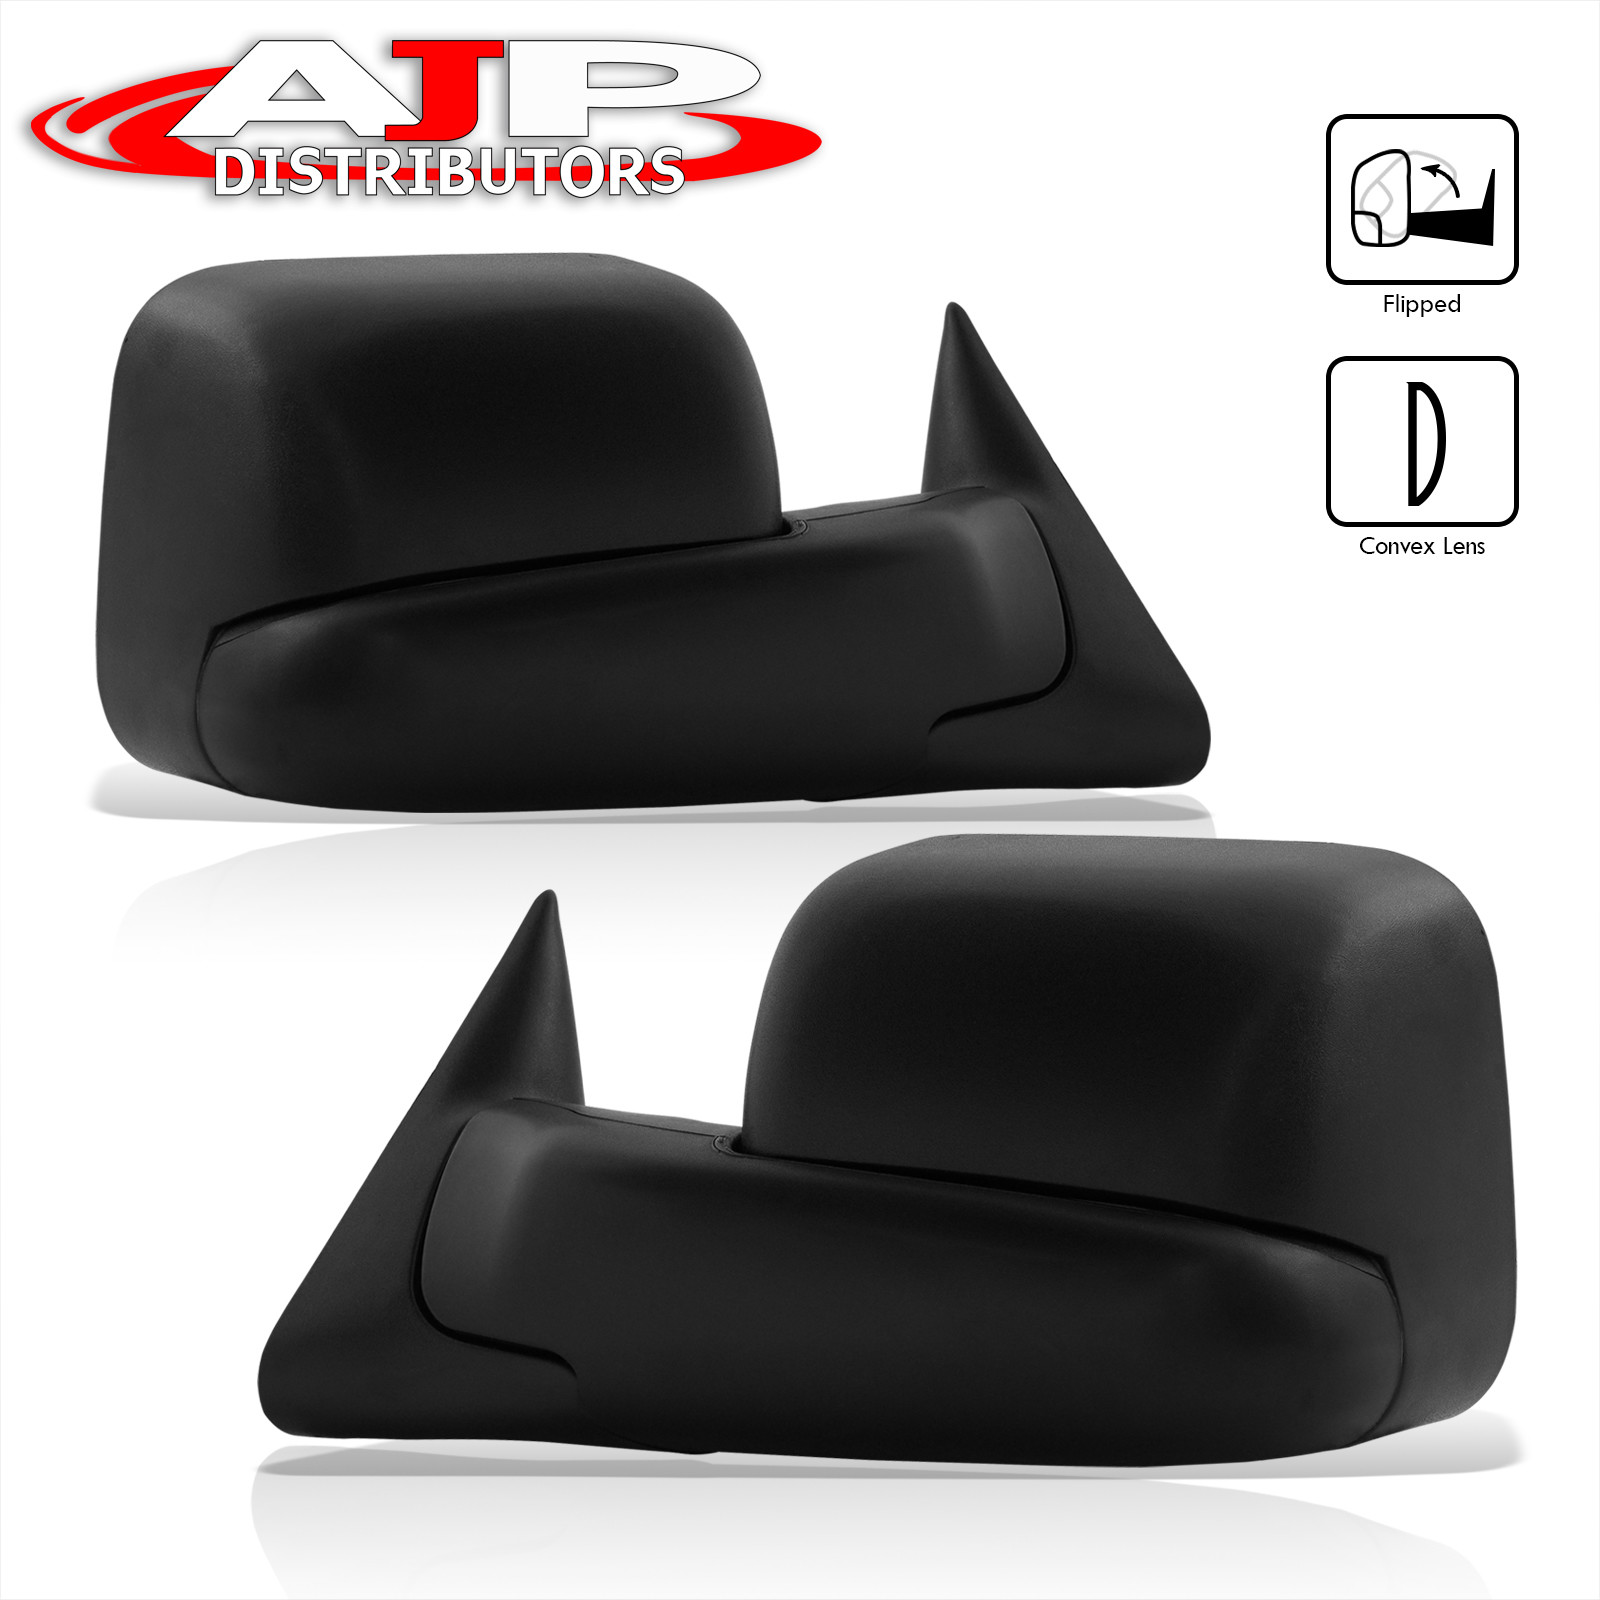 Superduty Older Style Towing Mirrors 2001my Manual Guide